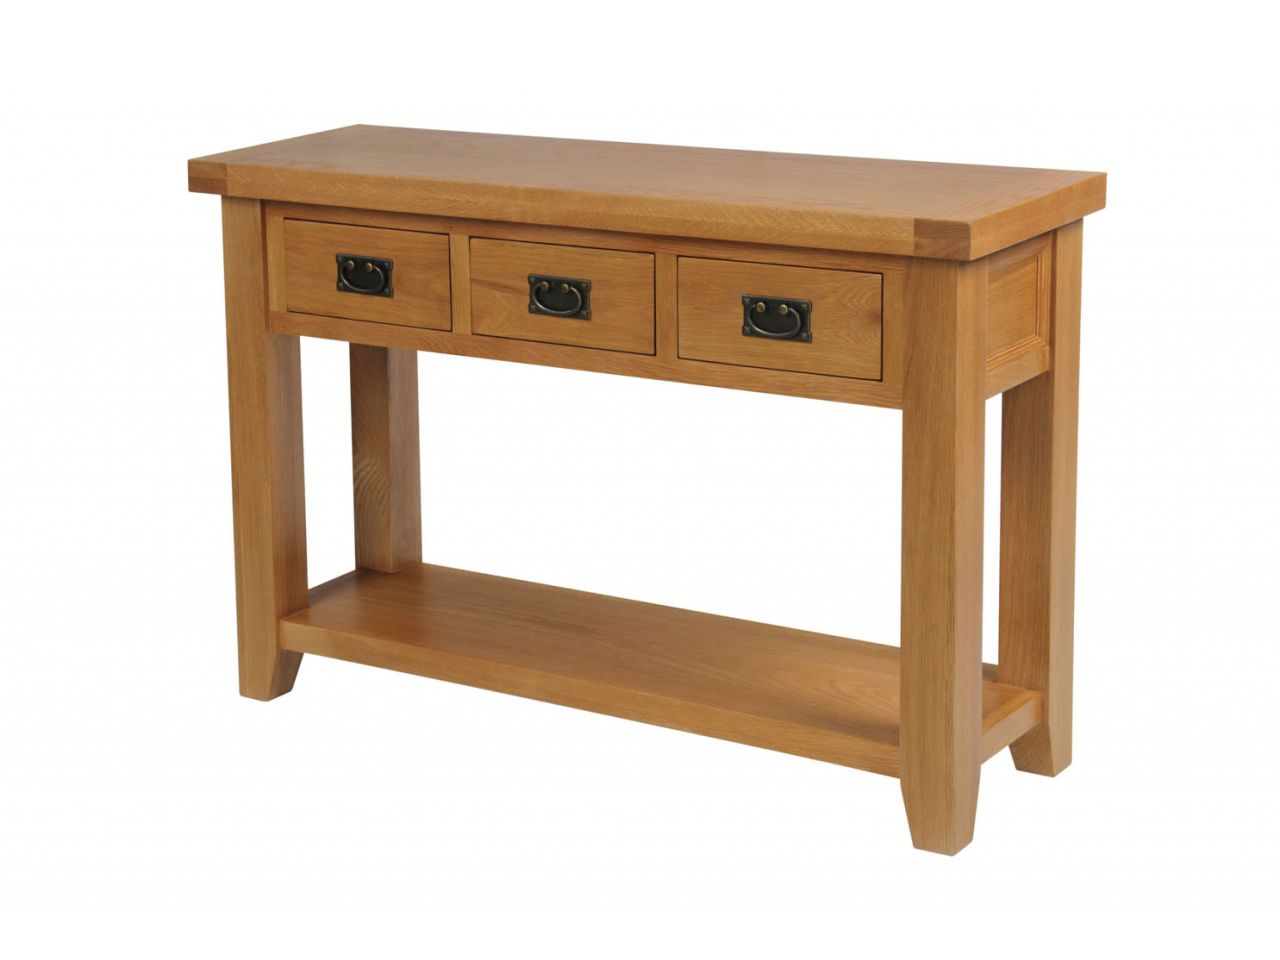 country cote sofa table very large back cushions oak 3 drawer console